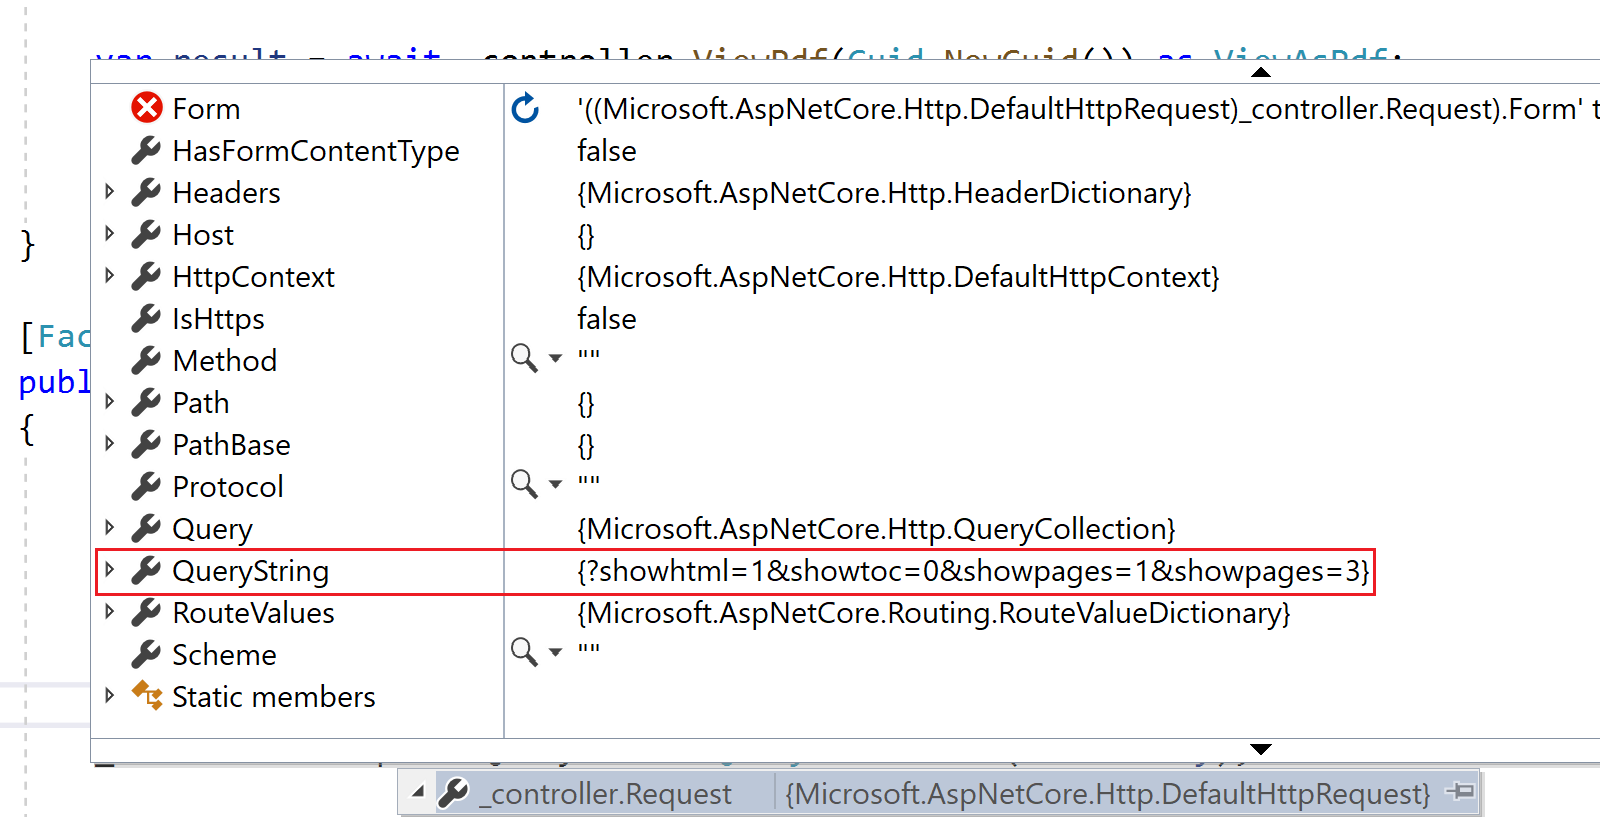 Multi-valued query string parameter in ASP.NET Core unit test